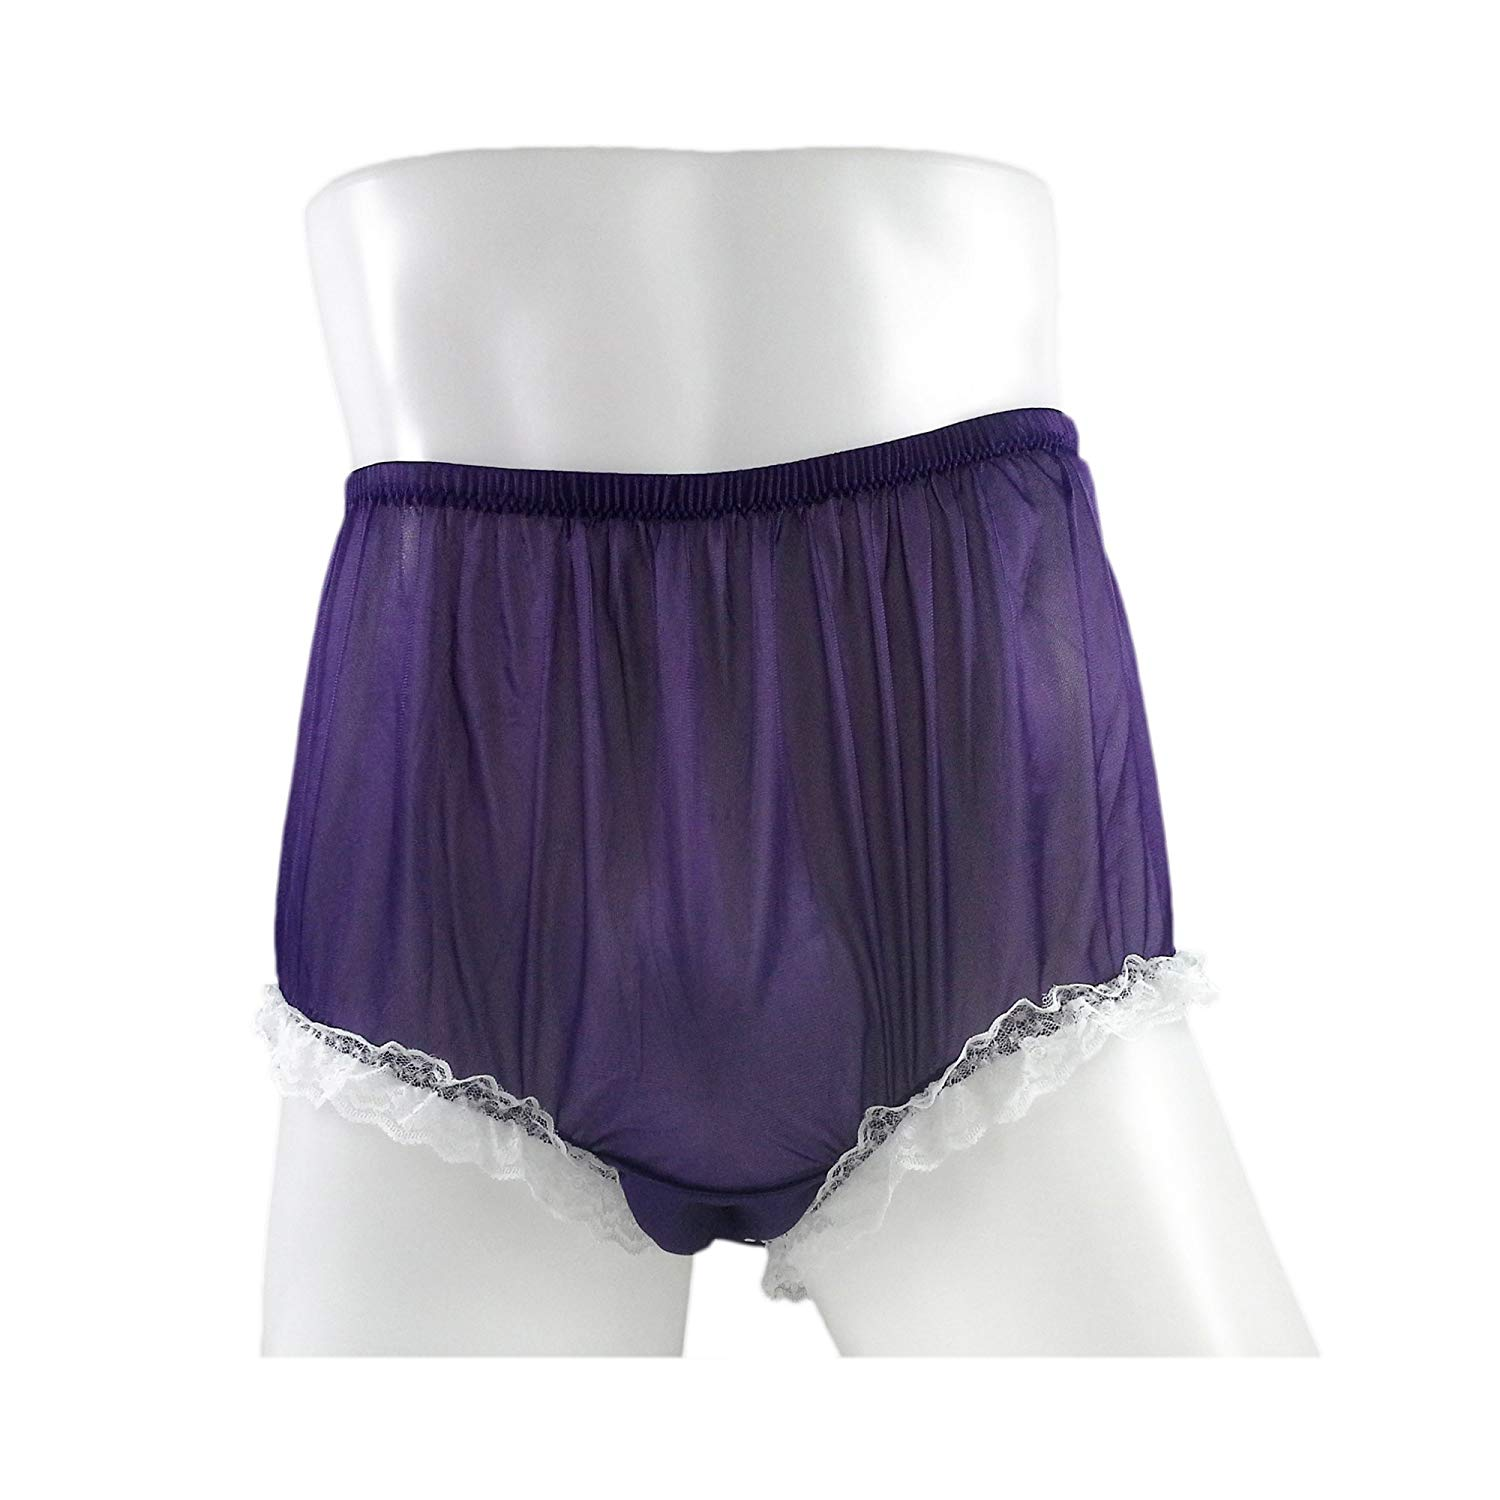 2fd46c1664 Get Quotations · NH02D05 Deep Purple Handmade Panties for Women Plus Size  Briefs Panty Nylon Underwear Hipster Undies Ladies